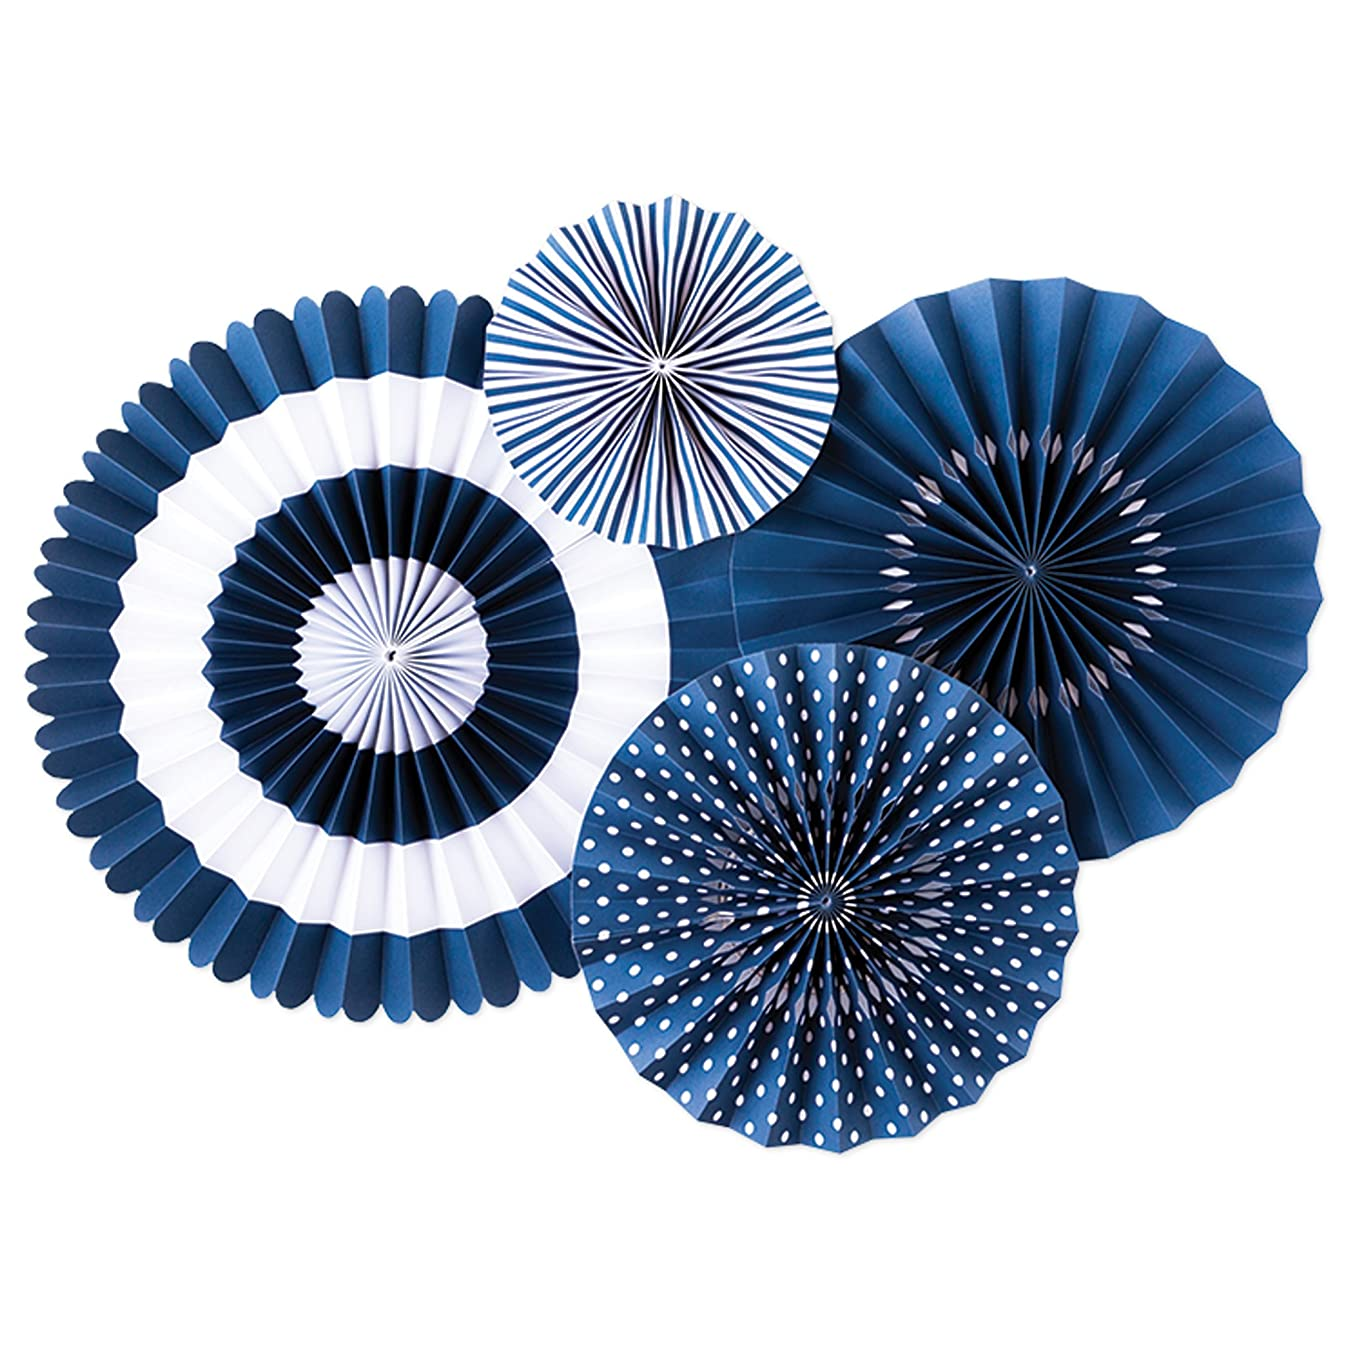 My Mind's Eye - Fancy Blueberry Navy Paper Party Fans - 4 Count - Decorations